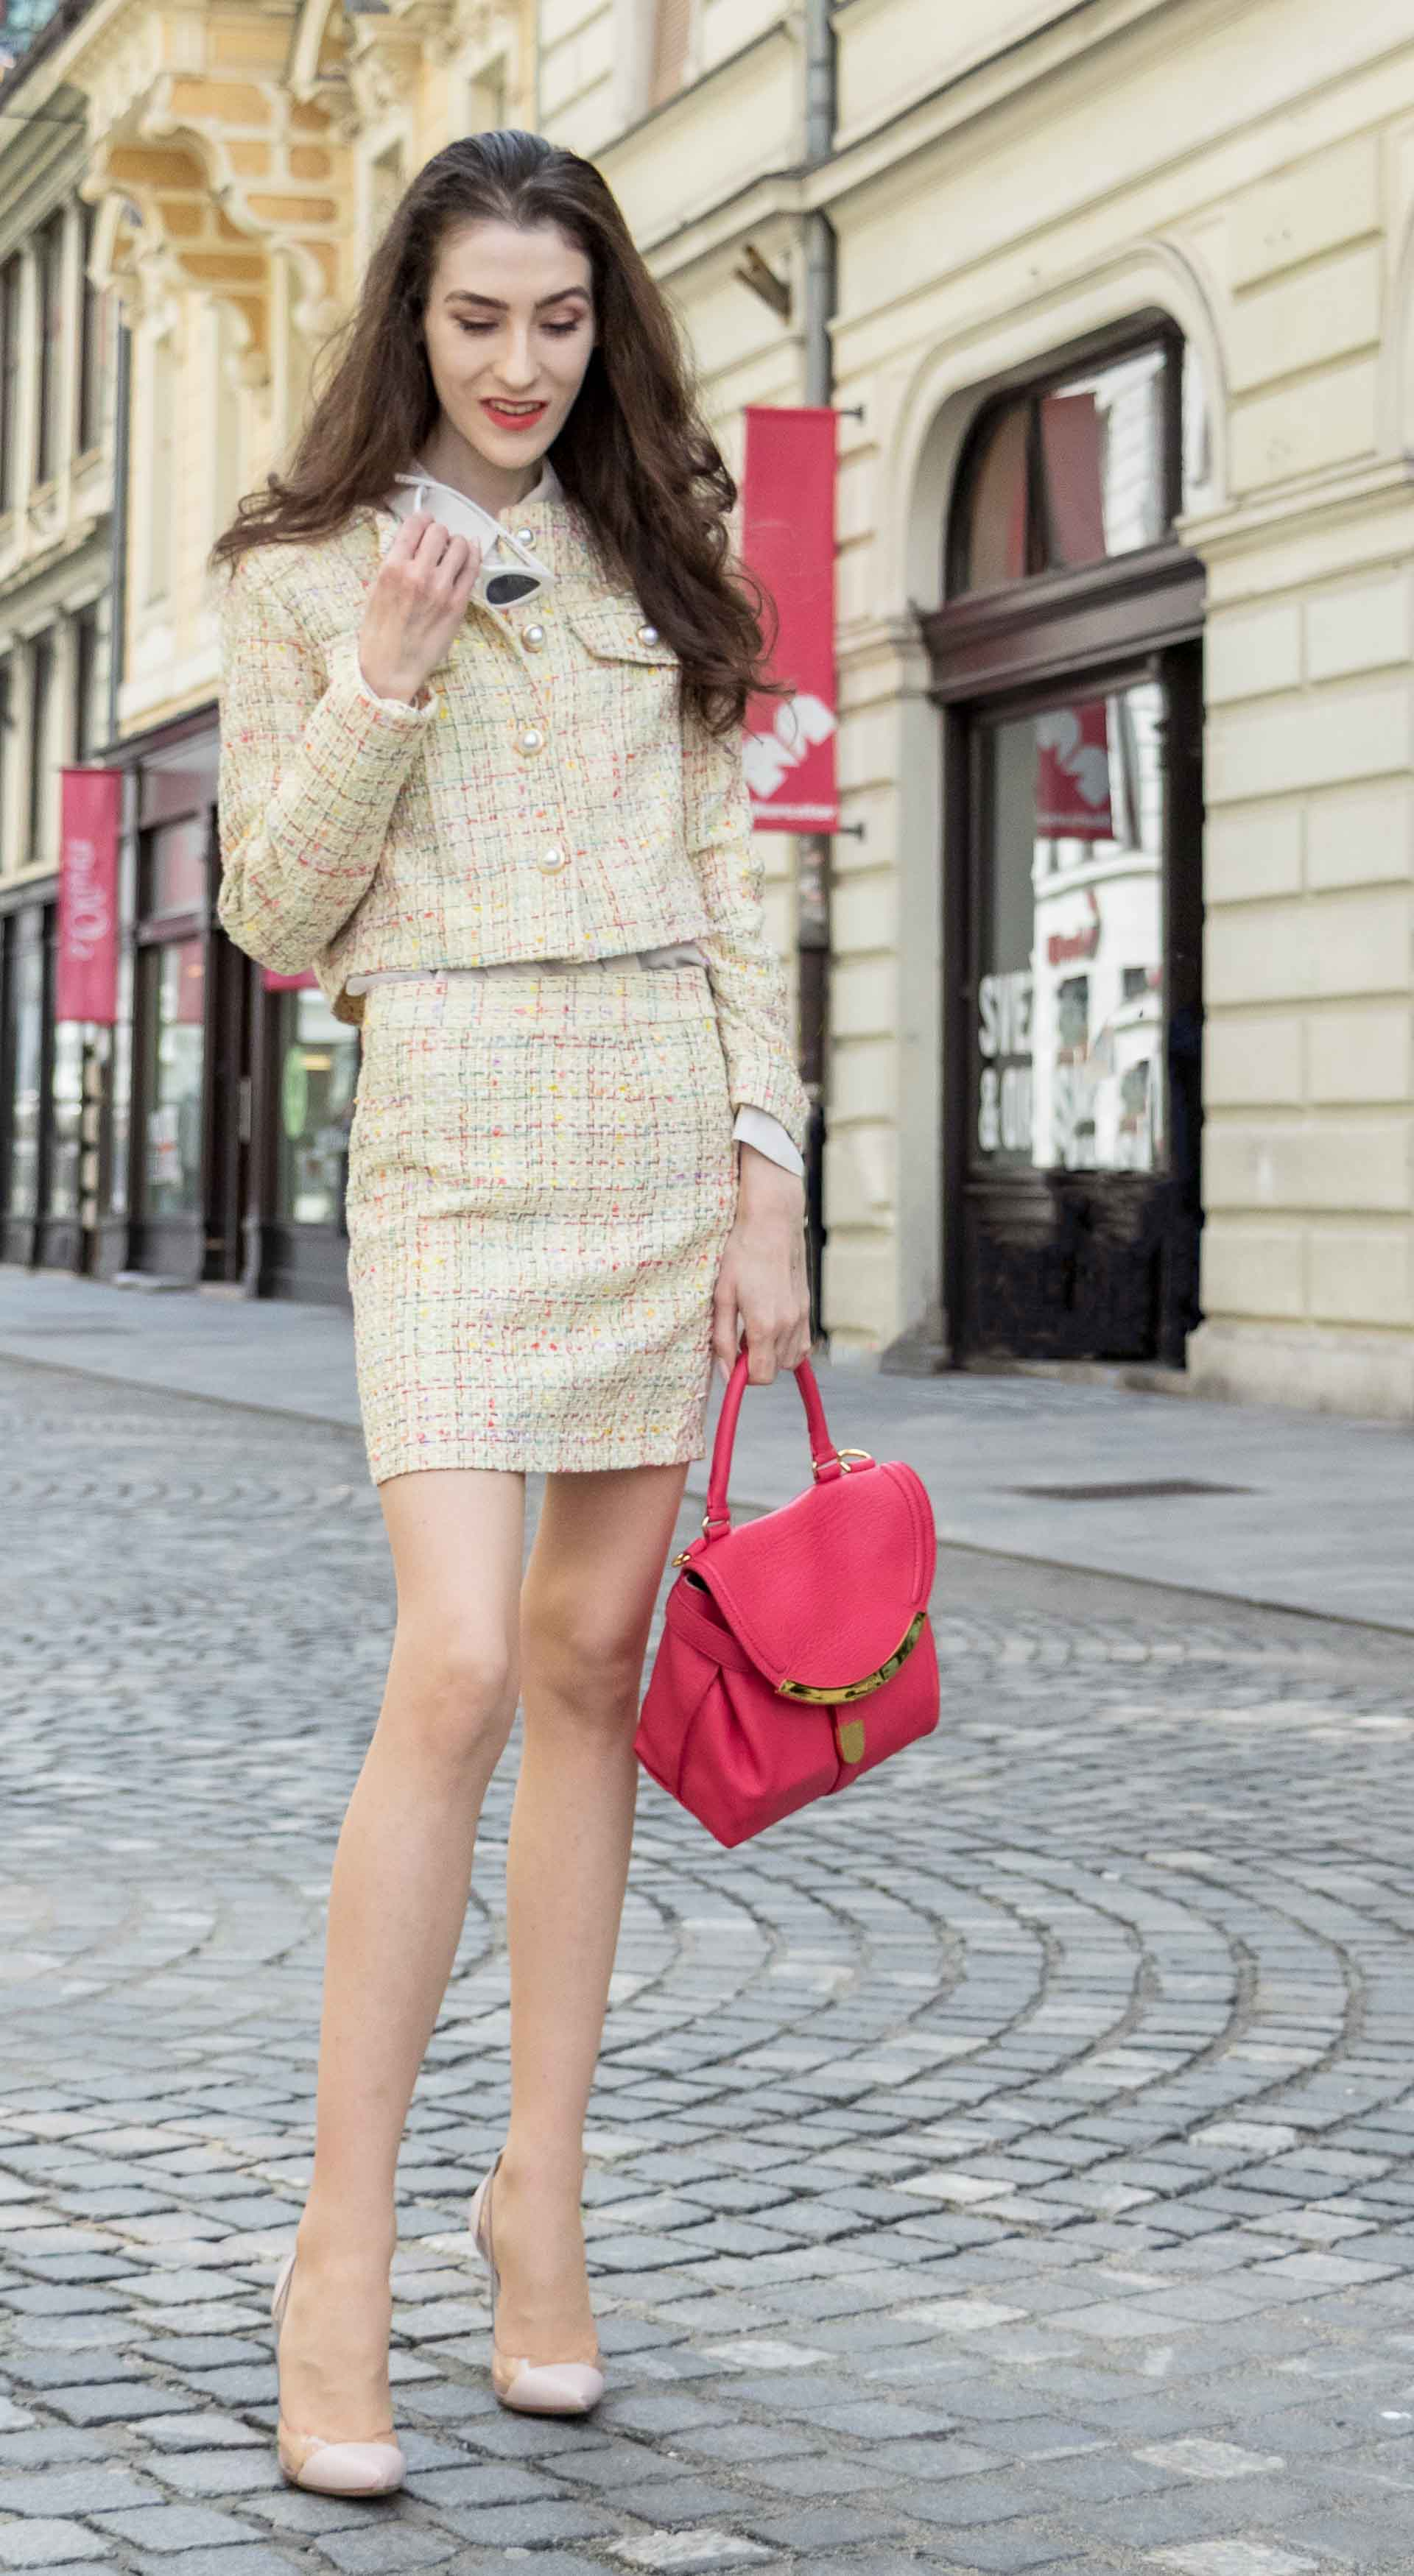 Fashion Blogger Veronika Lipar of Brunette from Wall Street wearing Storets yellow tweed mini skirt suit, Gianvito Rossi plexi pumps, See by Chloe pink top handle bag on the streets in Ljubljana